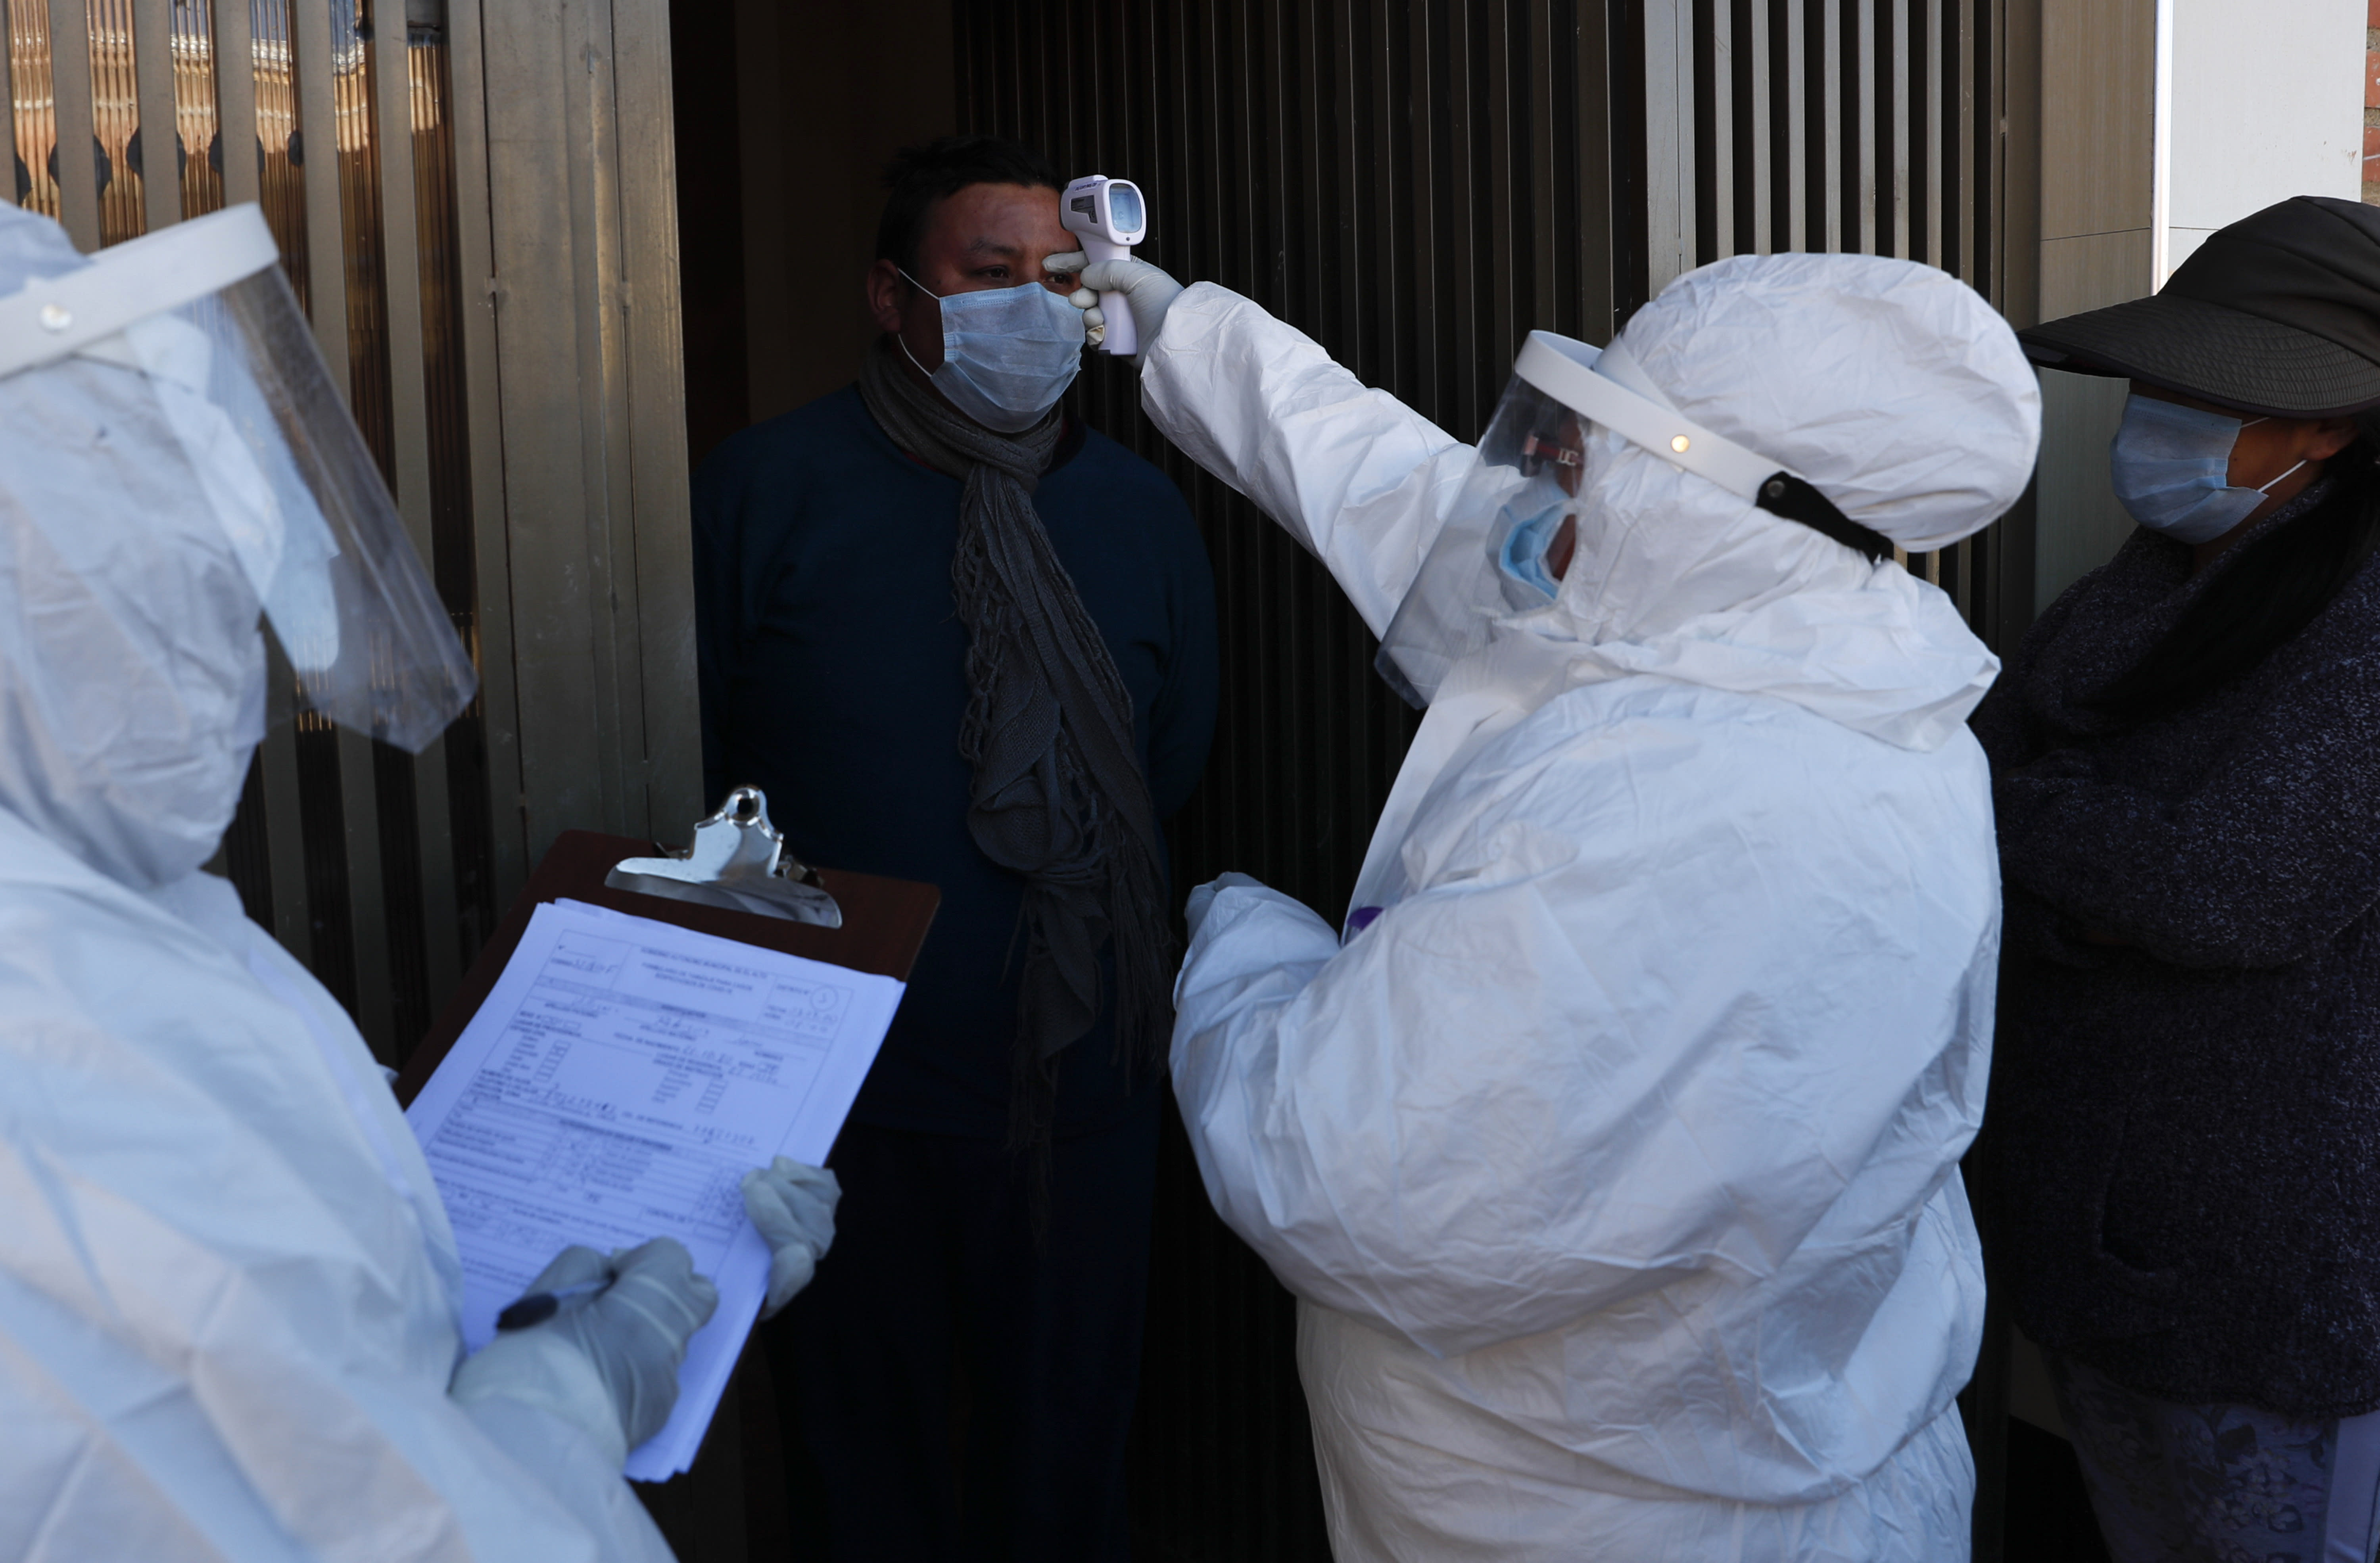 A doctor, dressed in full protective gear, measures the temperature of resident during a house-to-house new coronavirus testing campaign in the Villa Jaime Paz Zamora neighborhood of El Alto, Bolivia, Saturday, July 4, 2020. (AP Photo/Juan Karita)